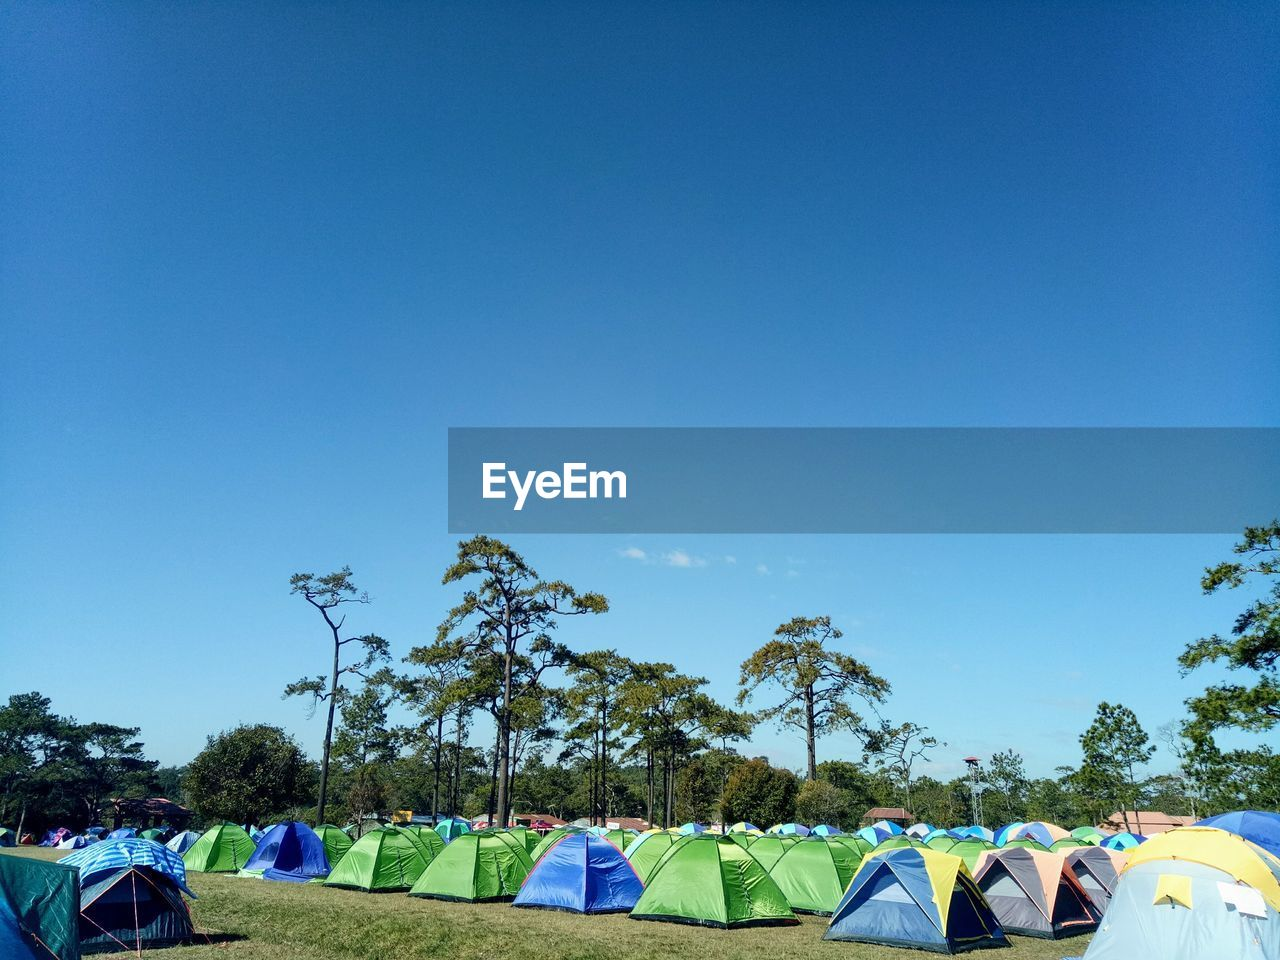 sky, blue, tree, copy space, plant, nature, group of people, day, clear sky, tent, real people, men, leisure activity, camping, umbrella, sunlight, people, group, multi colored, adult, outdoors